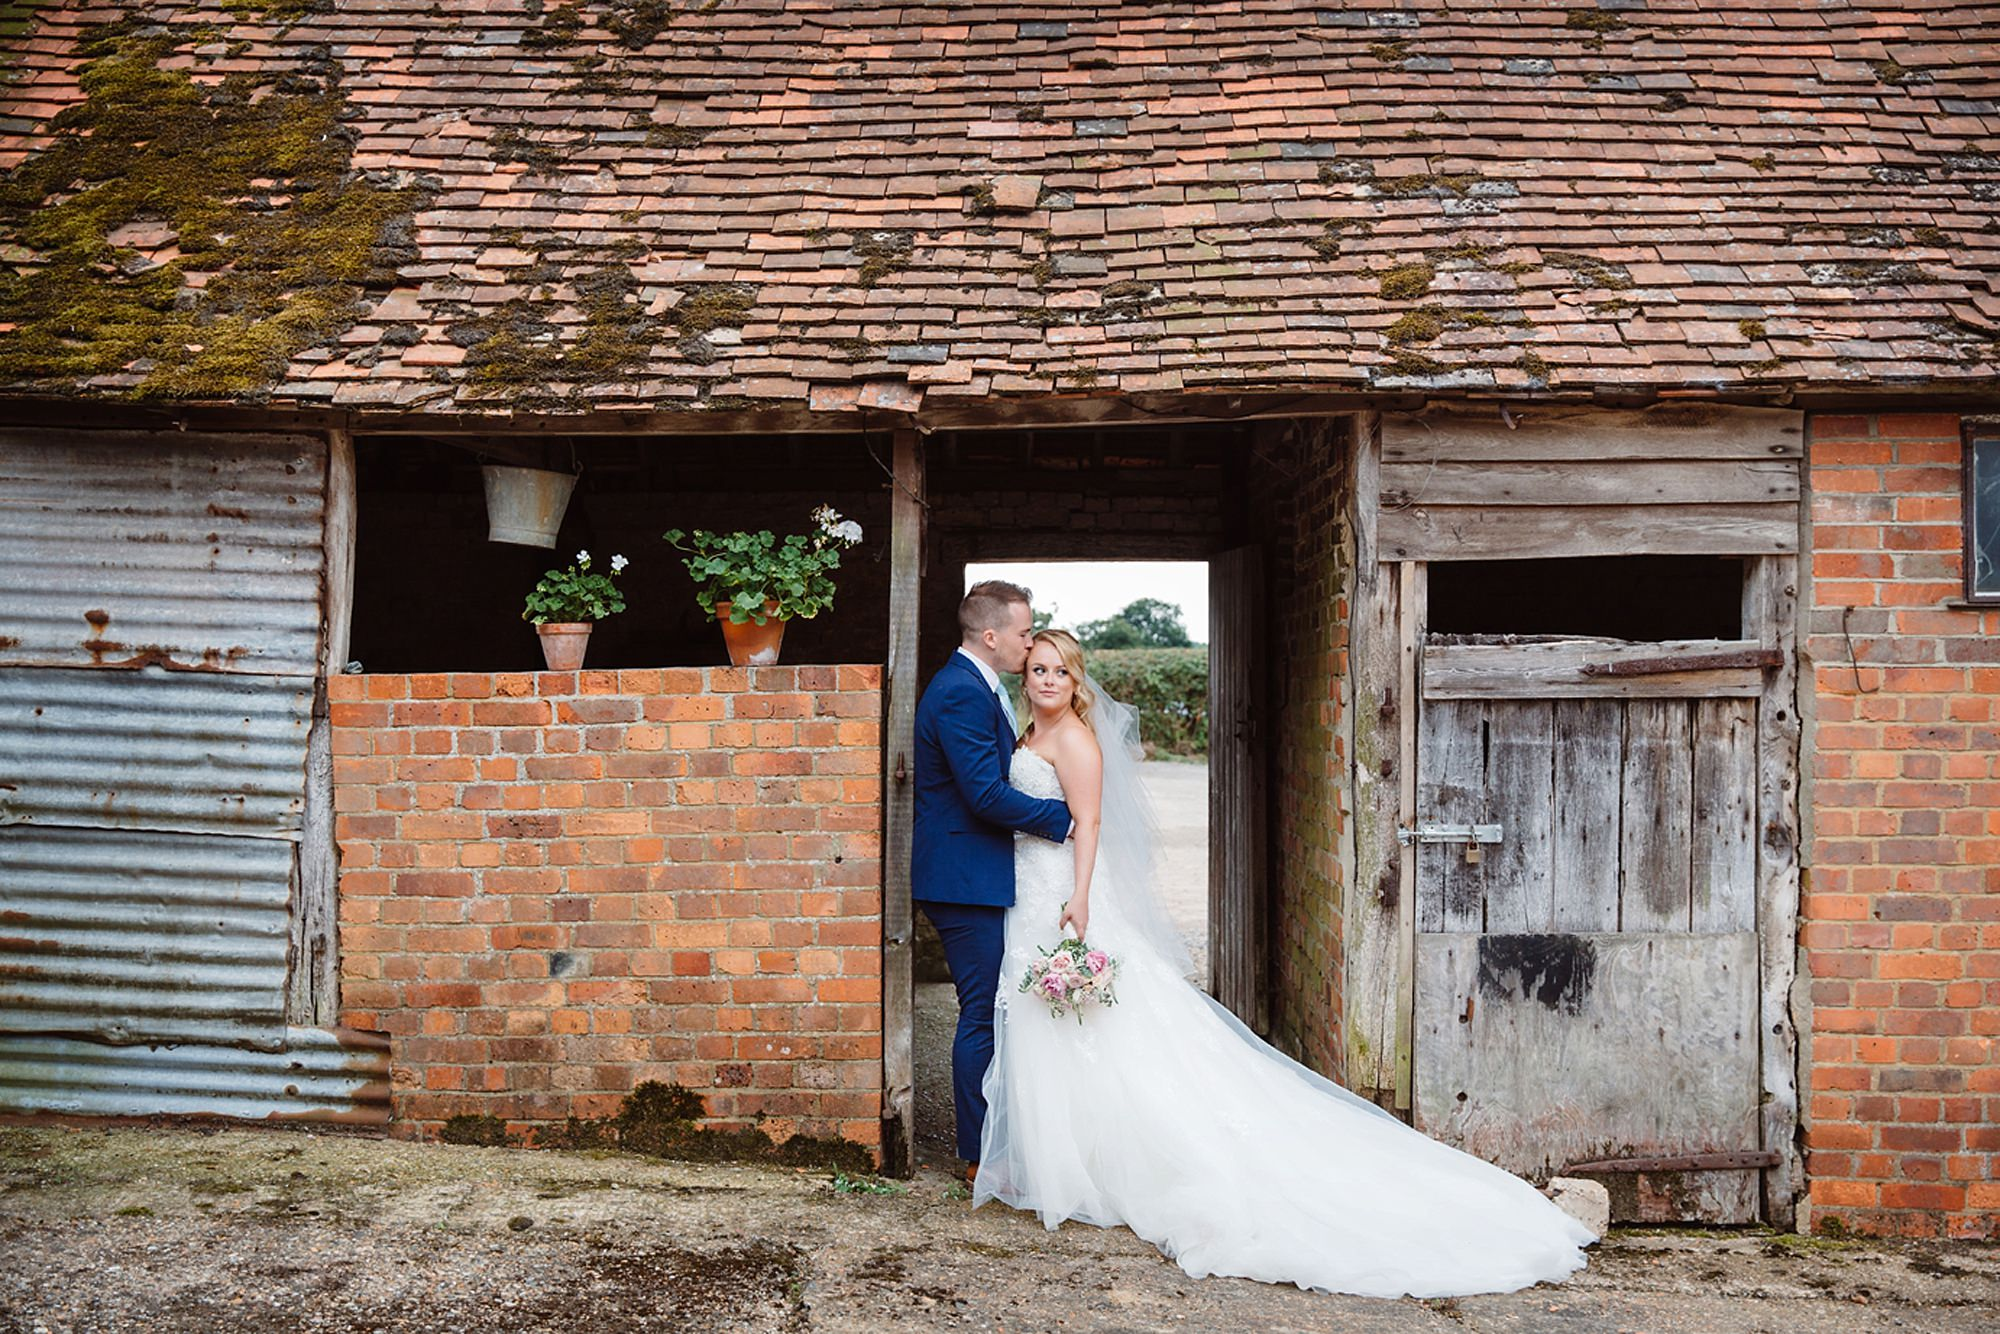 Old Greens Barn Newdigate wedding photography portraits in barns